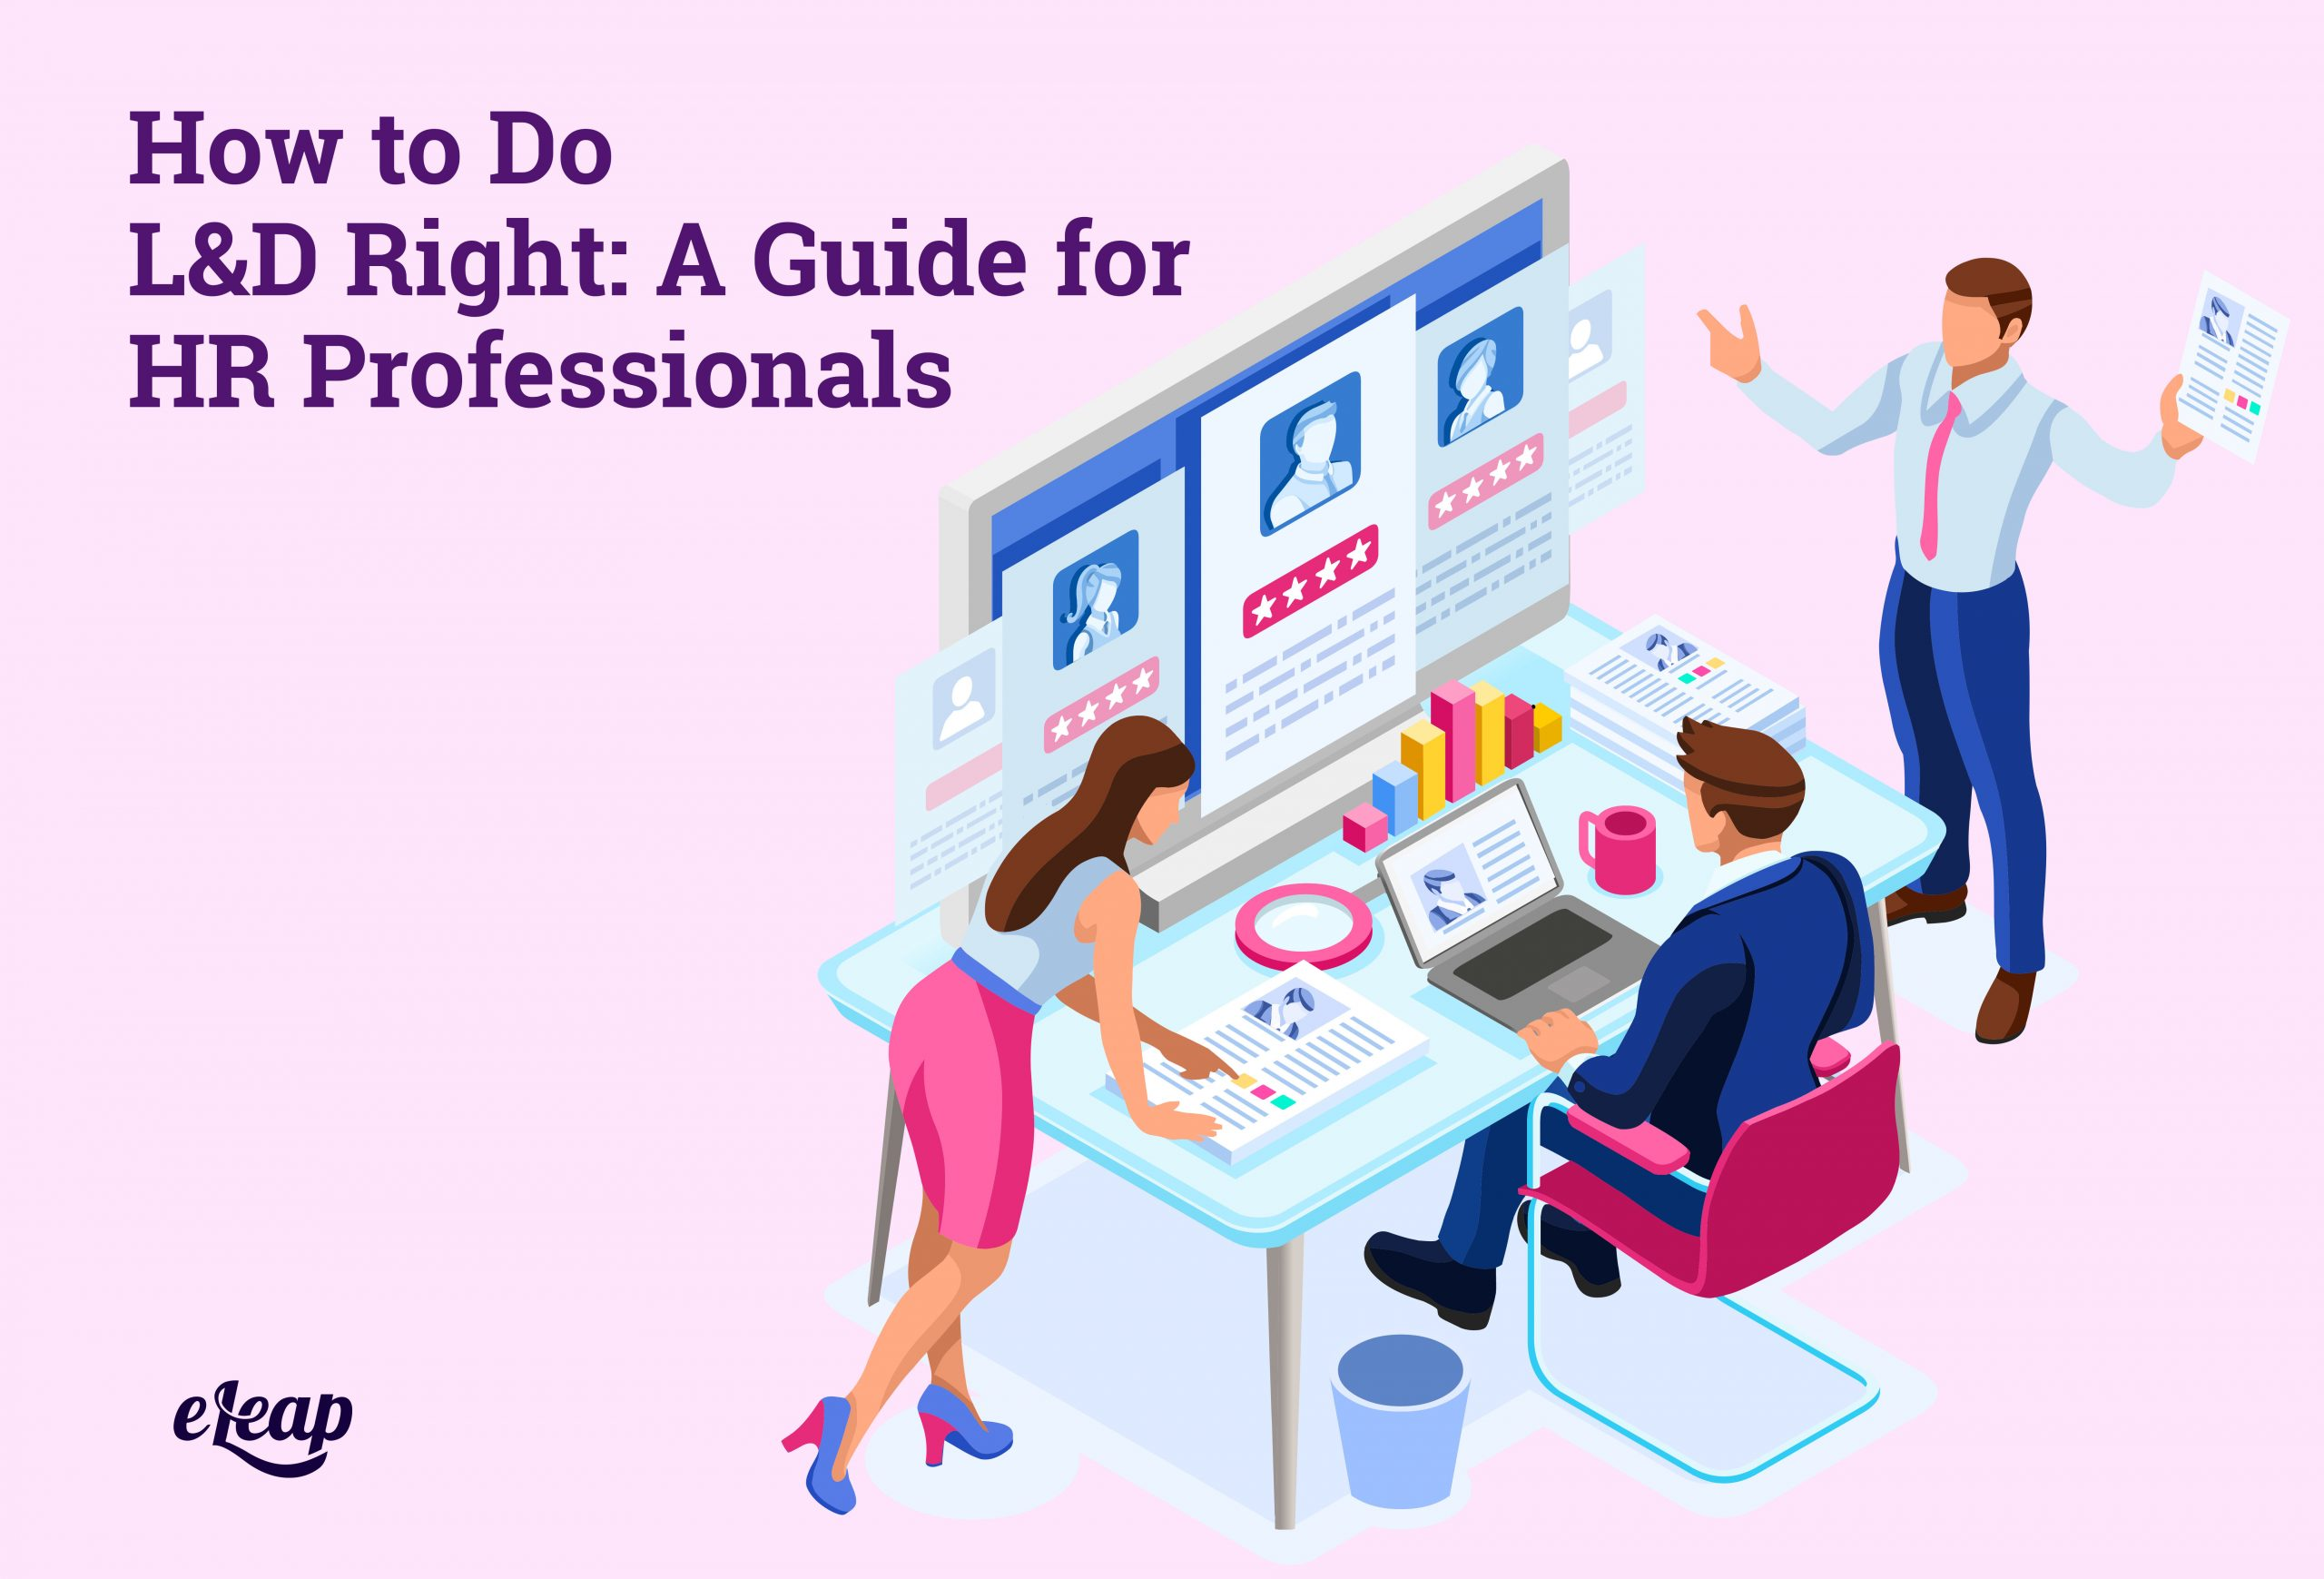 How to Do L&D Right: A Guide for HR Professionals